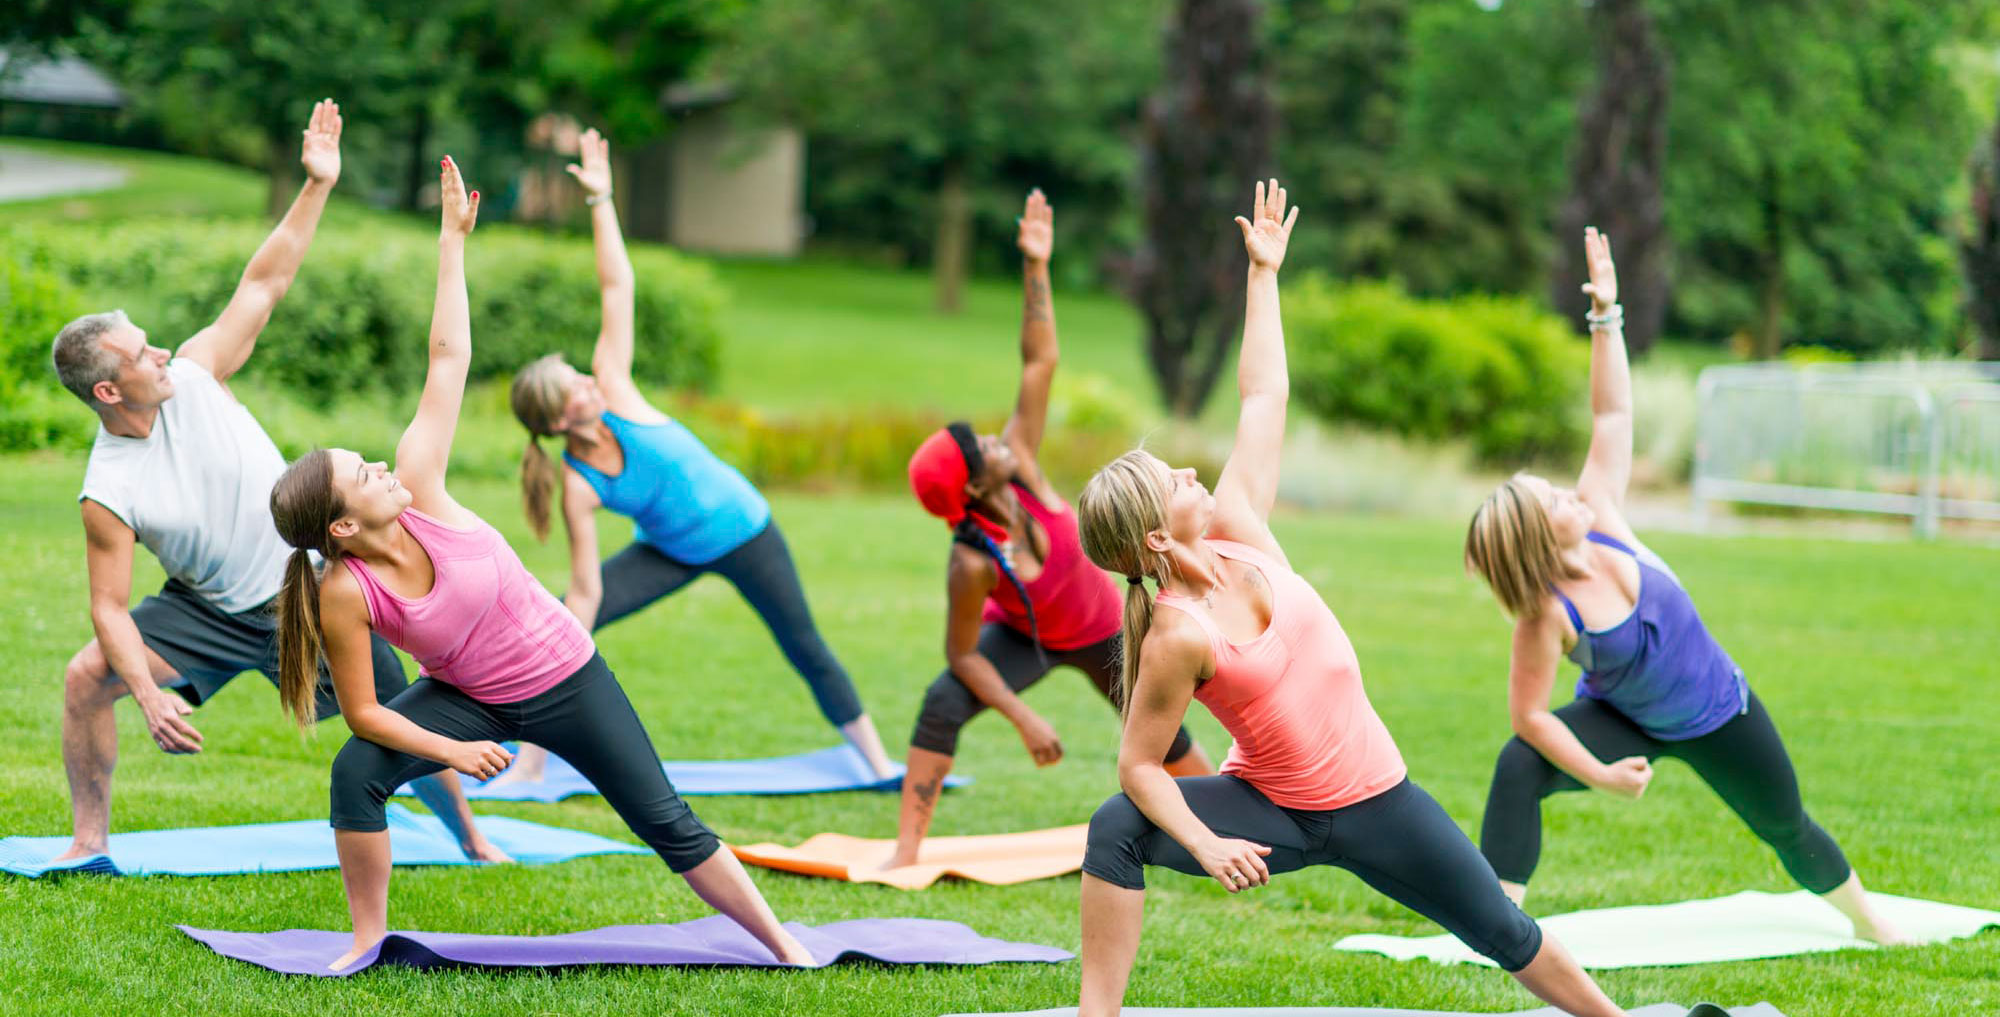 Yoga at the Body Camp